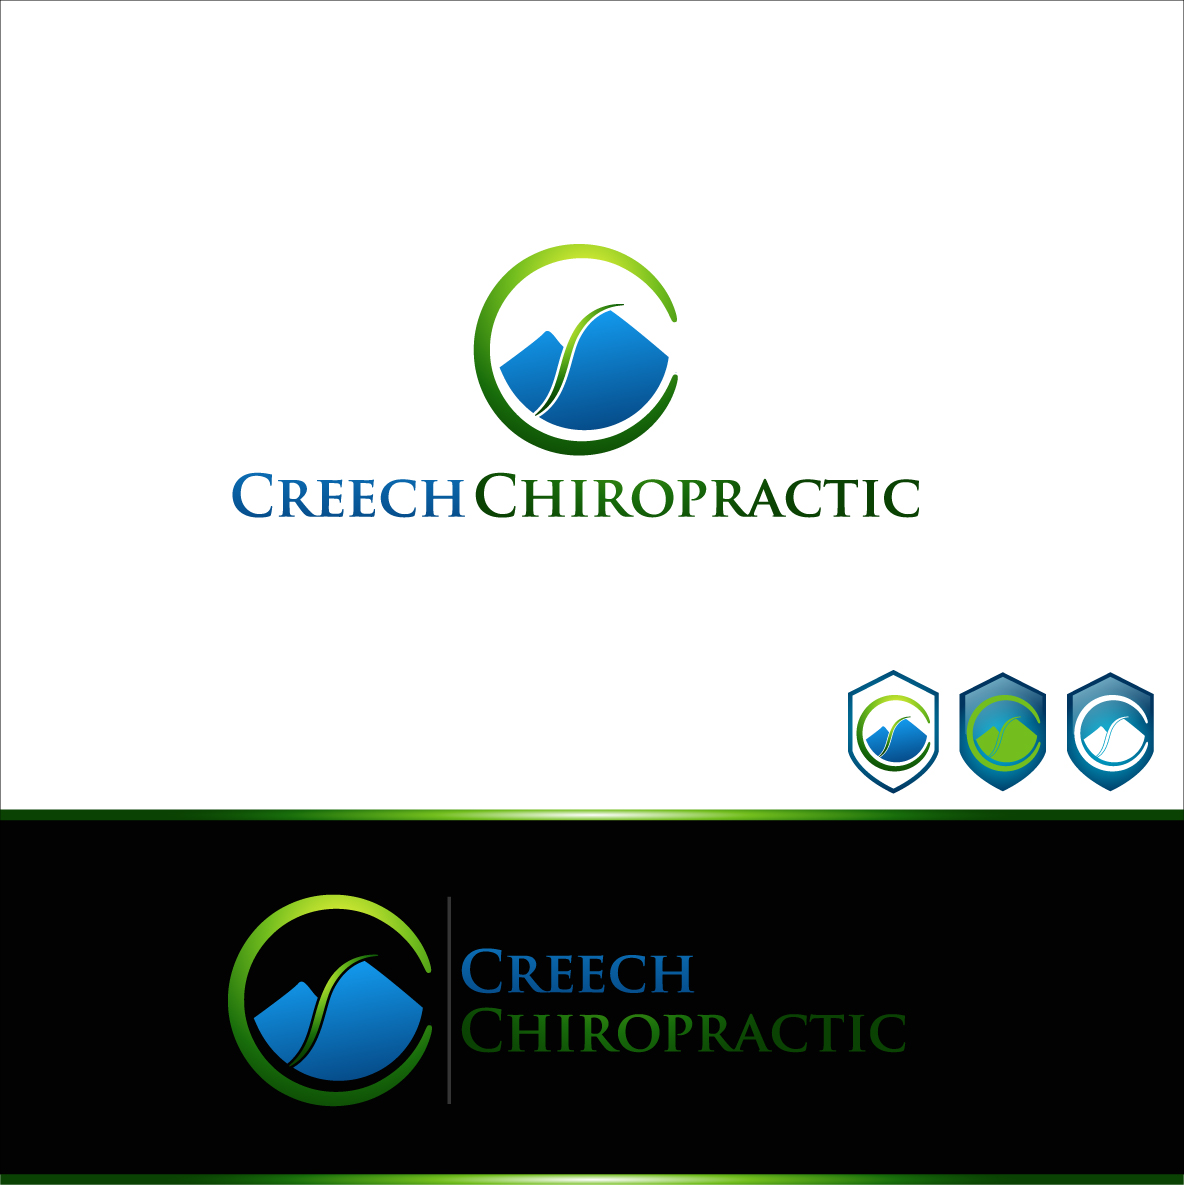 Logo Design by zoiDesign - Entry No. 95 in the Logo Design Contest Imaginative Logo Design for Creech Chiropractic.